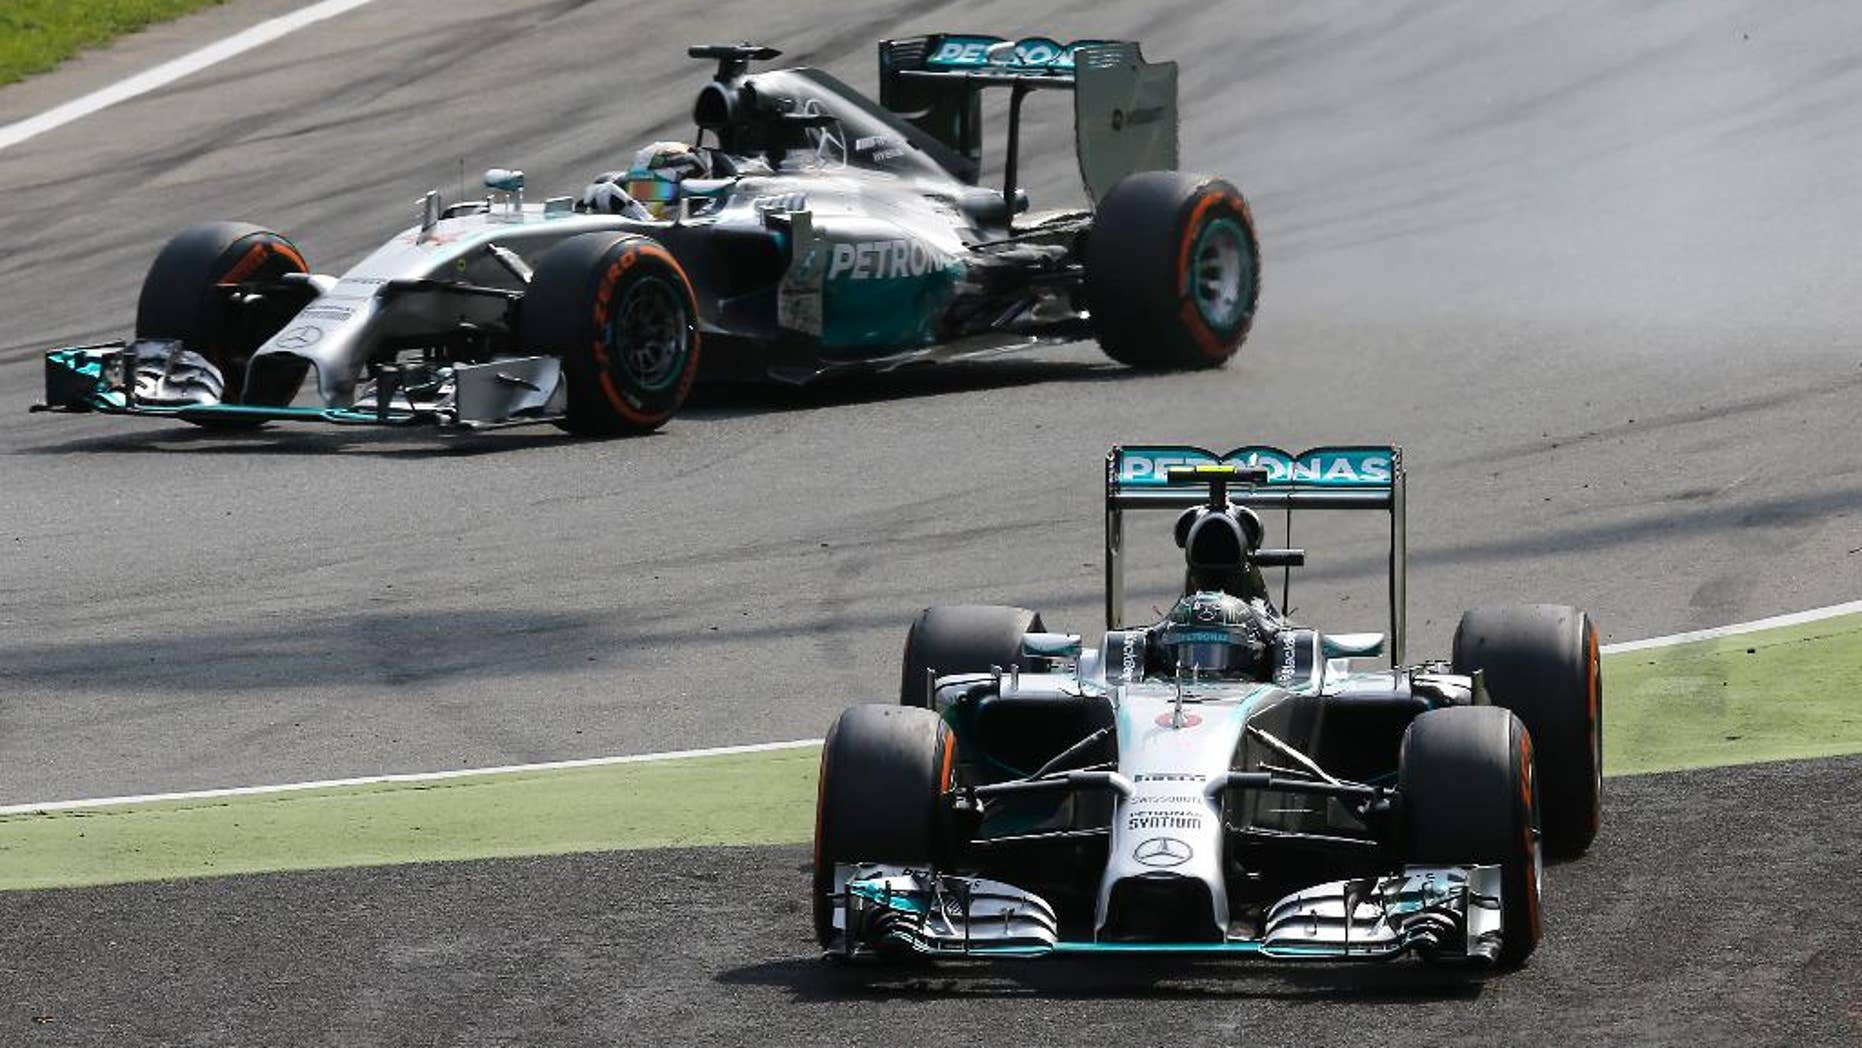 Mercedes driver Nico Rosberg of Germany, foreground, drives off the track while his teammate Mercedes driver Lewis Hamilton of Britain overtakes him during the Italian Formula One Grand Prix at the Monza racetrack, in Monza, Italy, Sunday, Sept. 7, 2014. (AP Photo/Antonio Calanni)